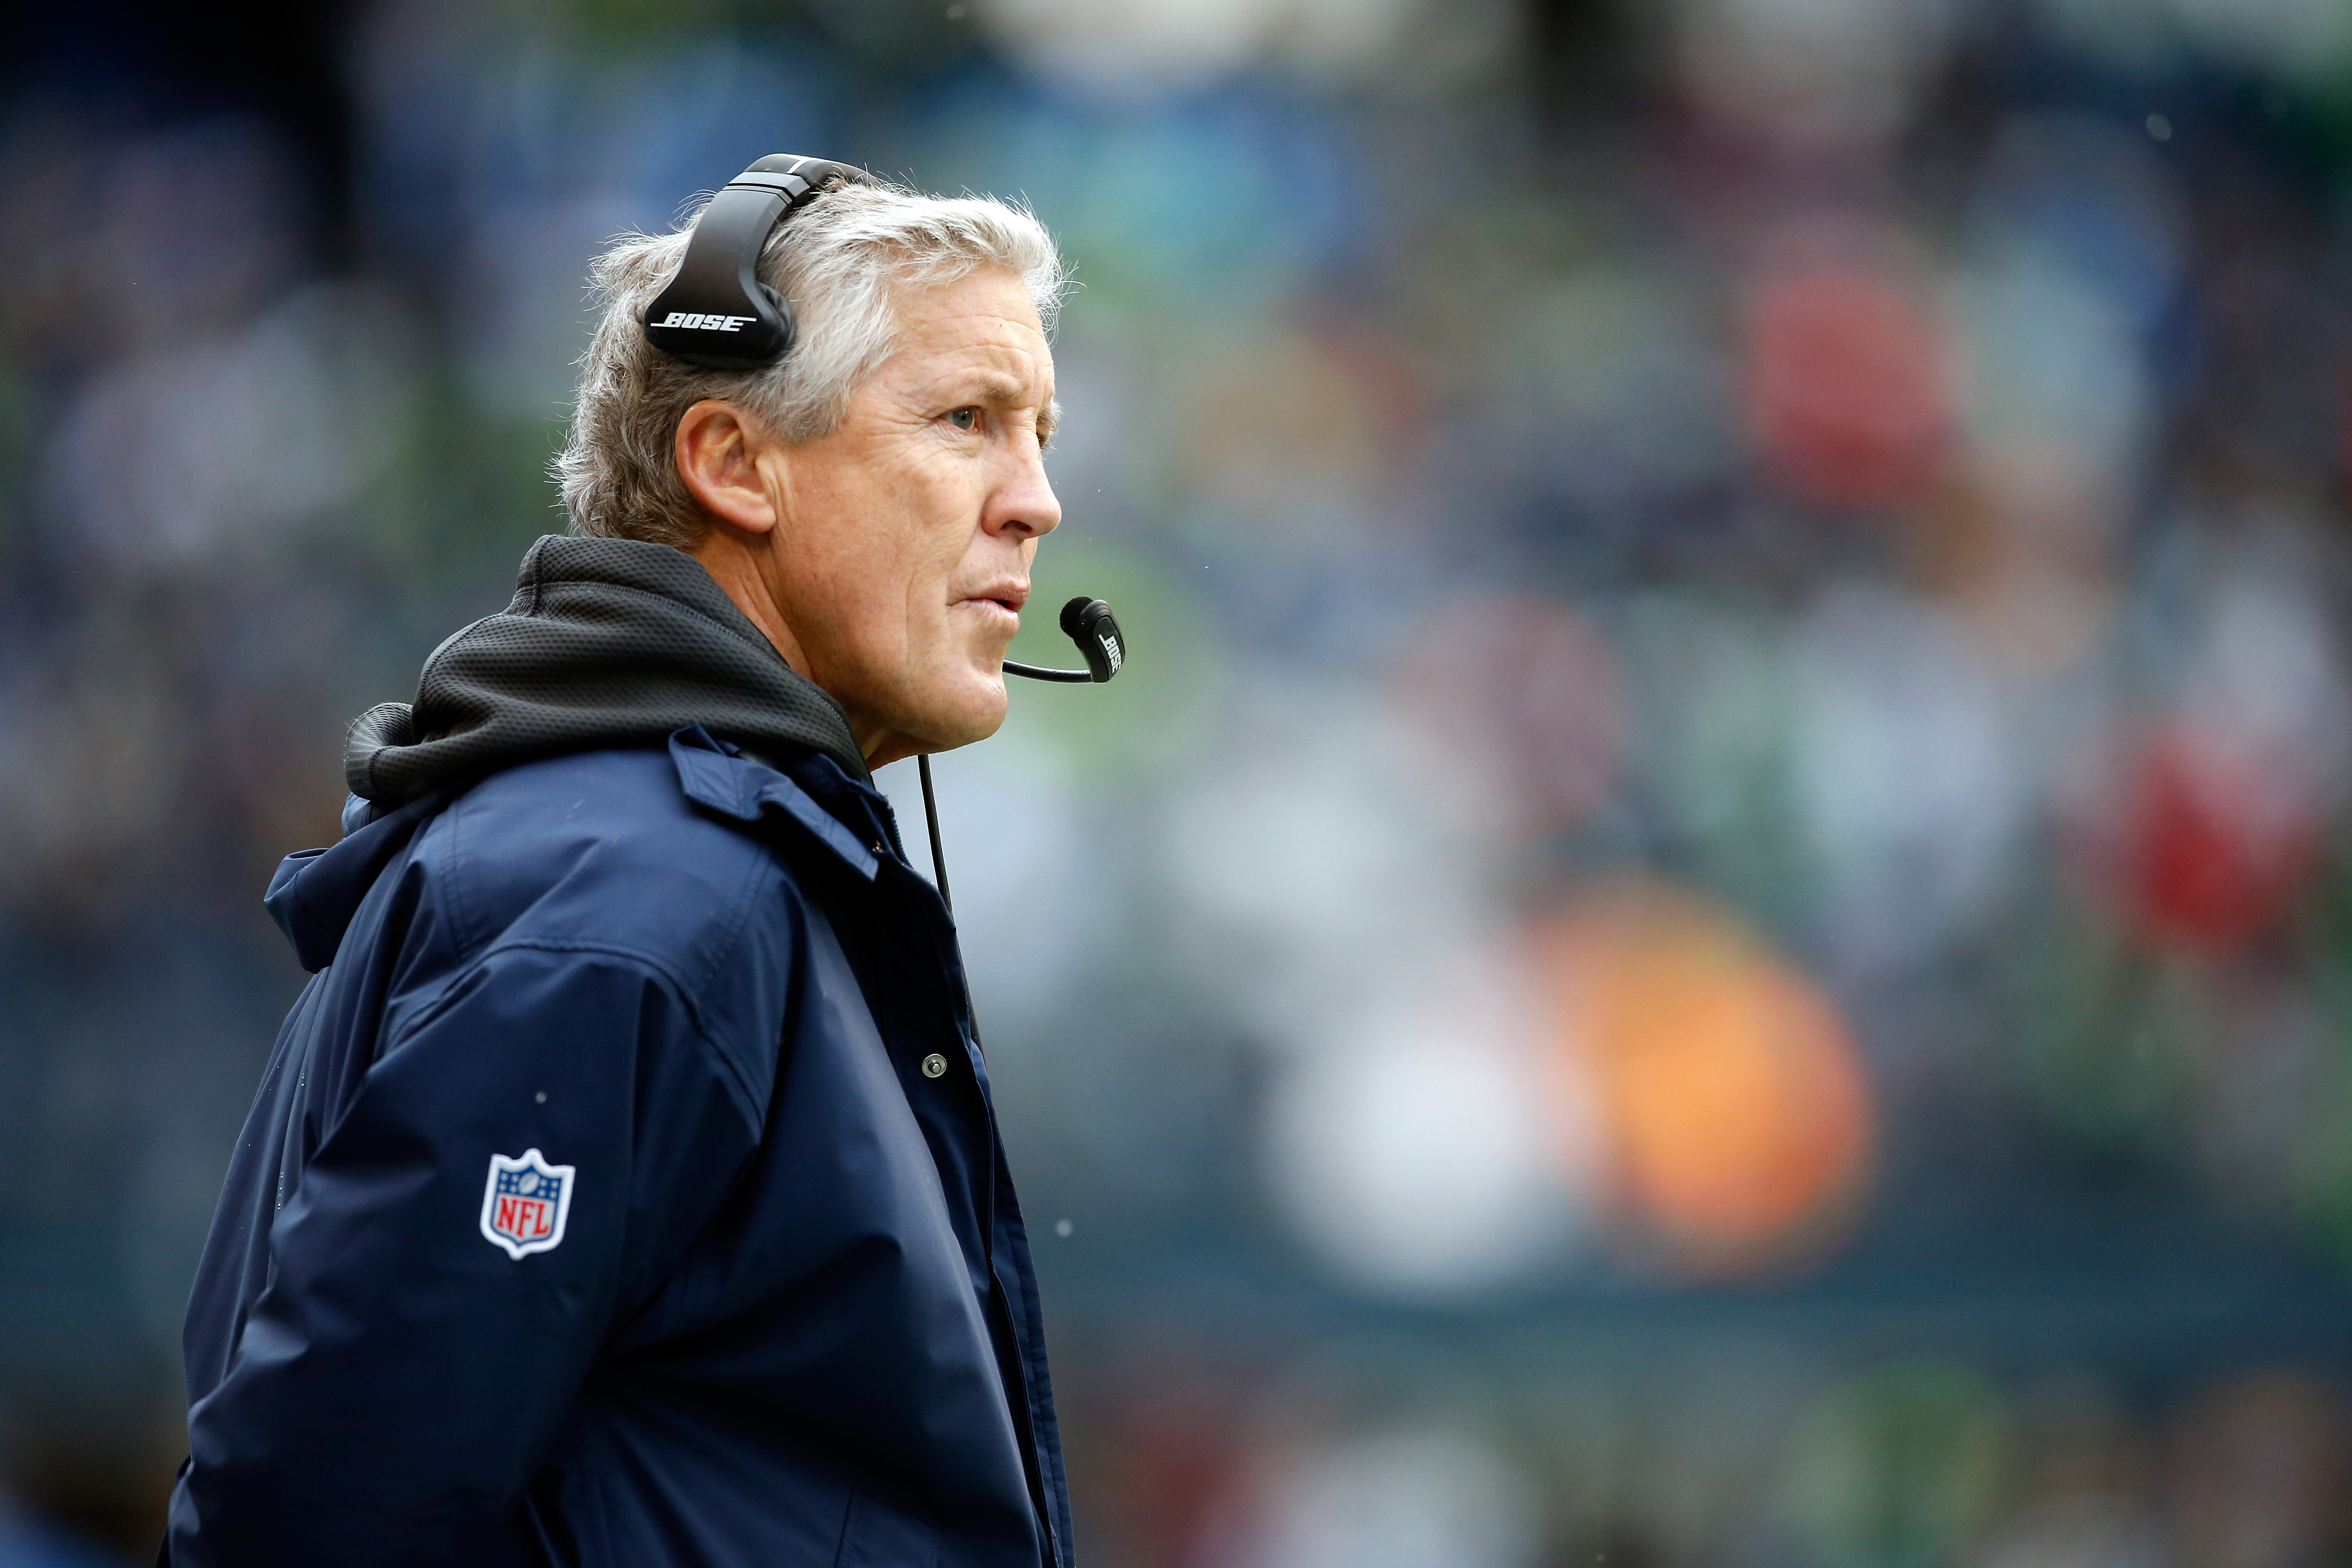 Seahawks coach Pete Carroll wants his defenders to take the ball away.